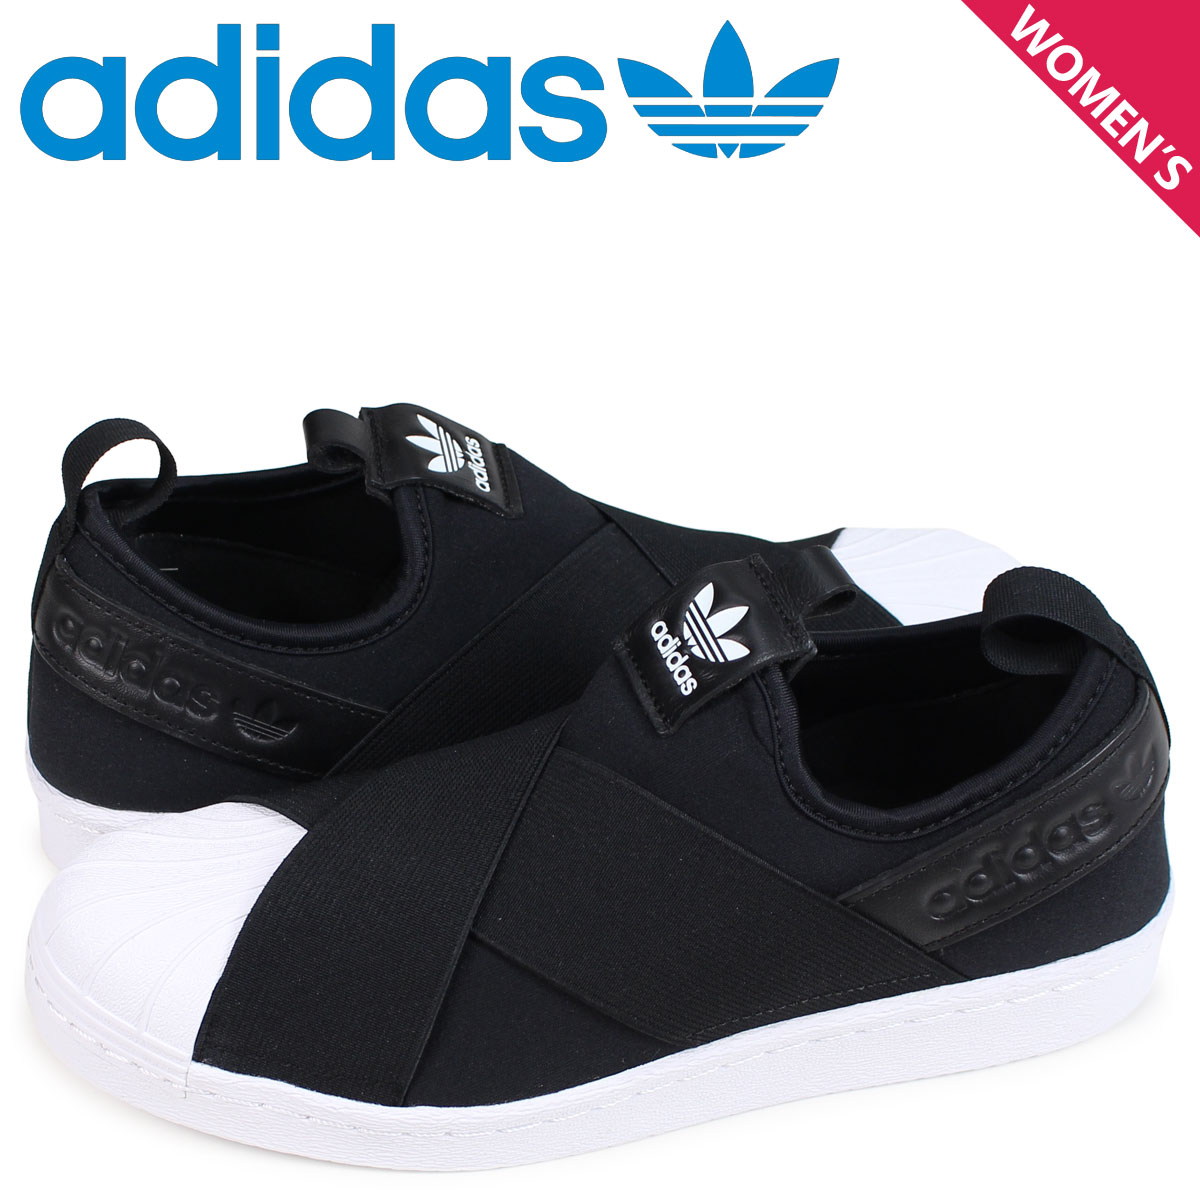 Adidas originals adidas Originals superstar sneakers slip-ons Lady s  SUPERSTAR SLIP-ON W black S81337  load planned Shinnyu load in reservation  product 1 25 ... 2c9d0b19d